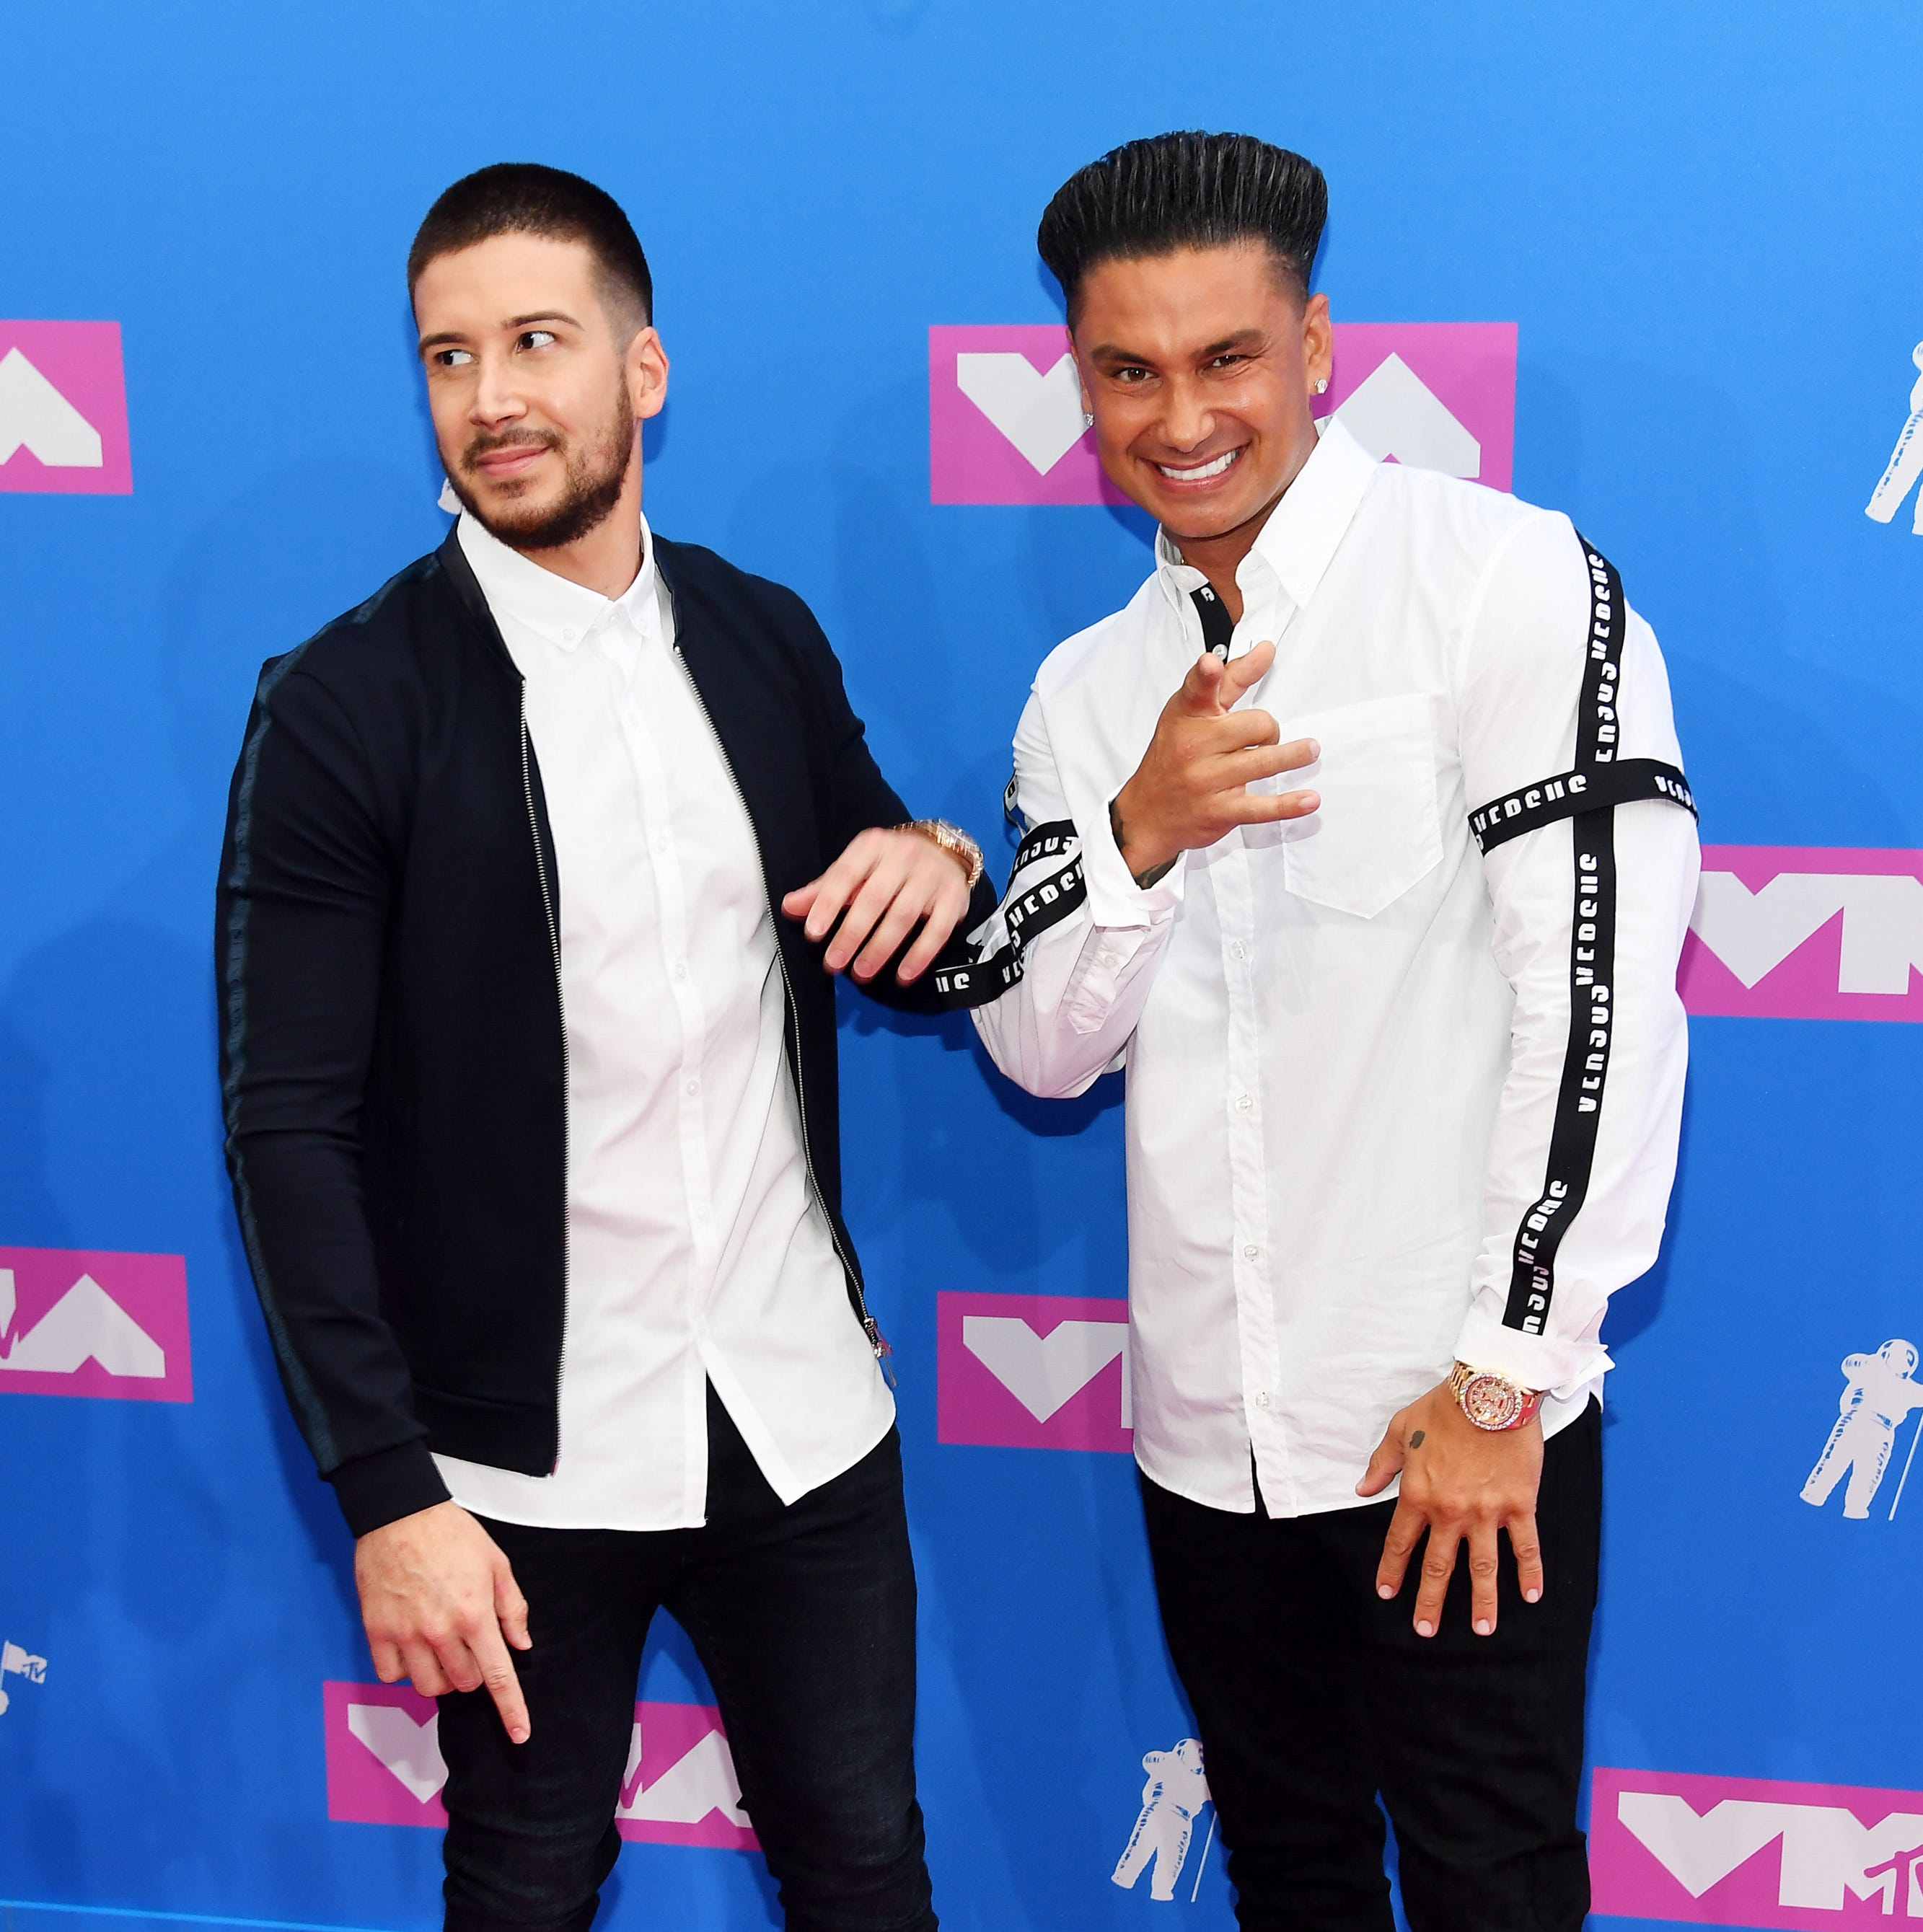 Jersey Shore's DJ Pauly D and Vinny's 'Double Shot at Love' on MTV: The Jersey connection